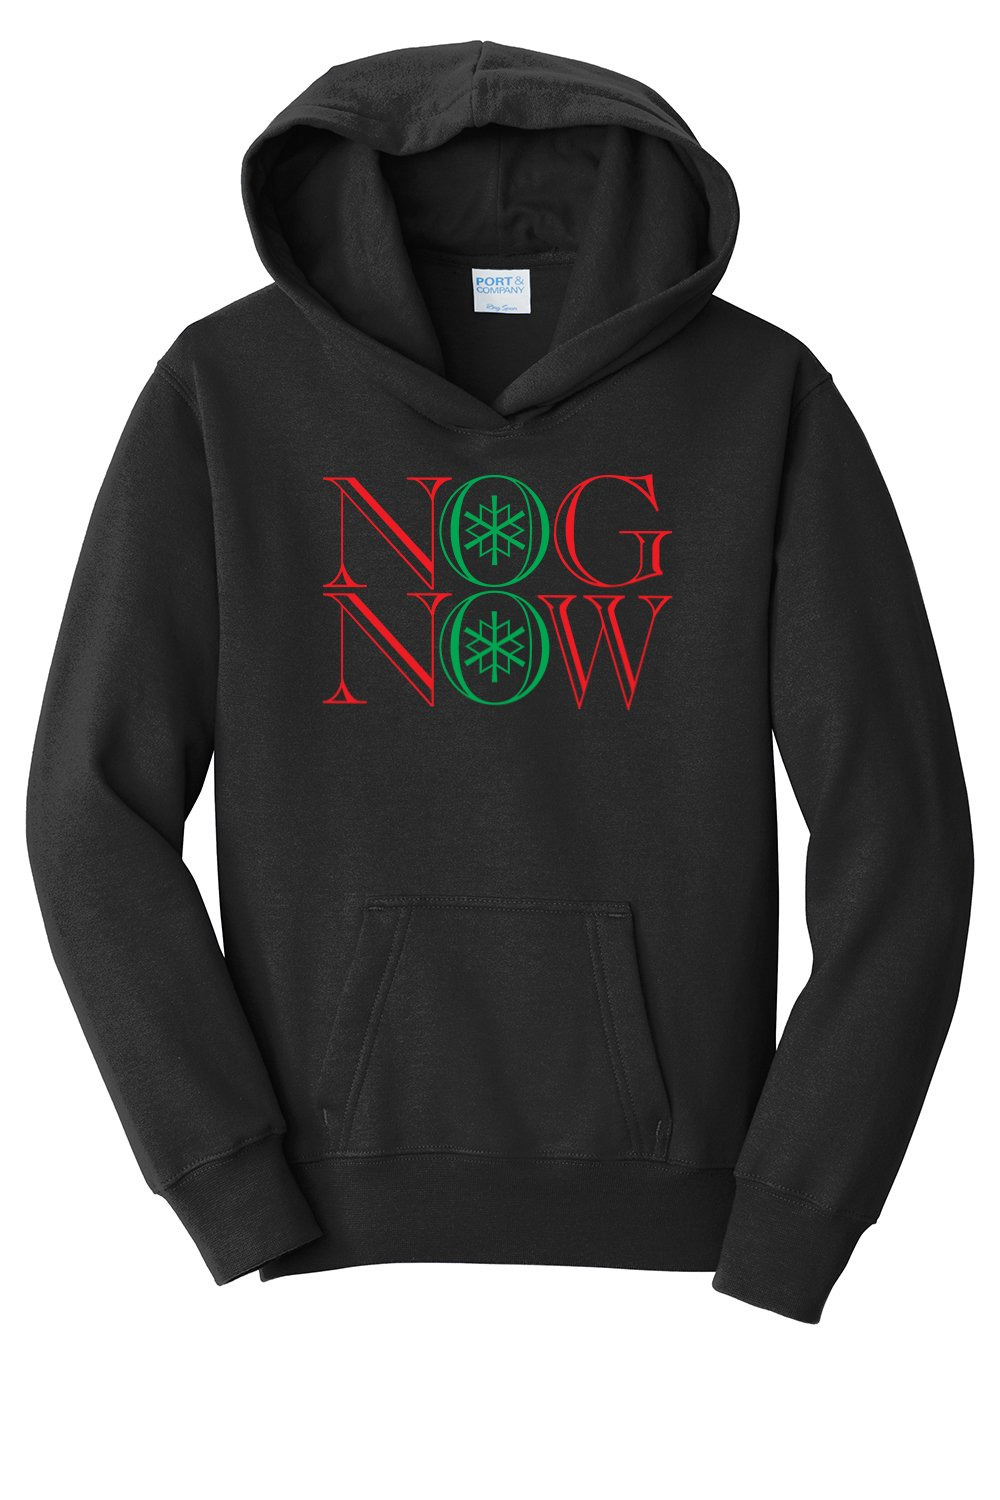 Youth's Nog Now Hooded Sweatshirt, Small, Black